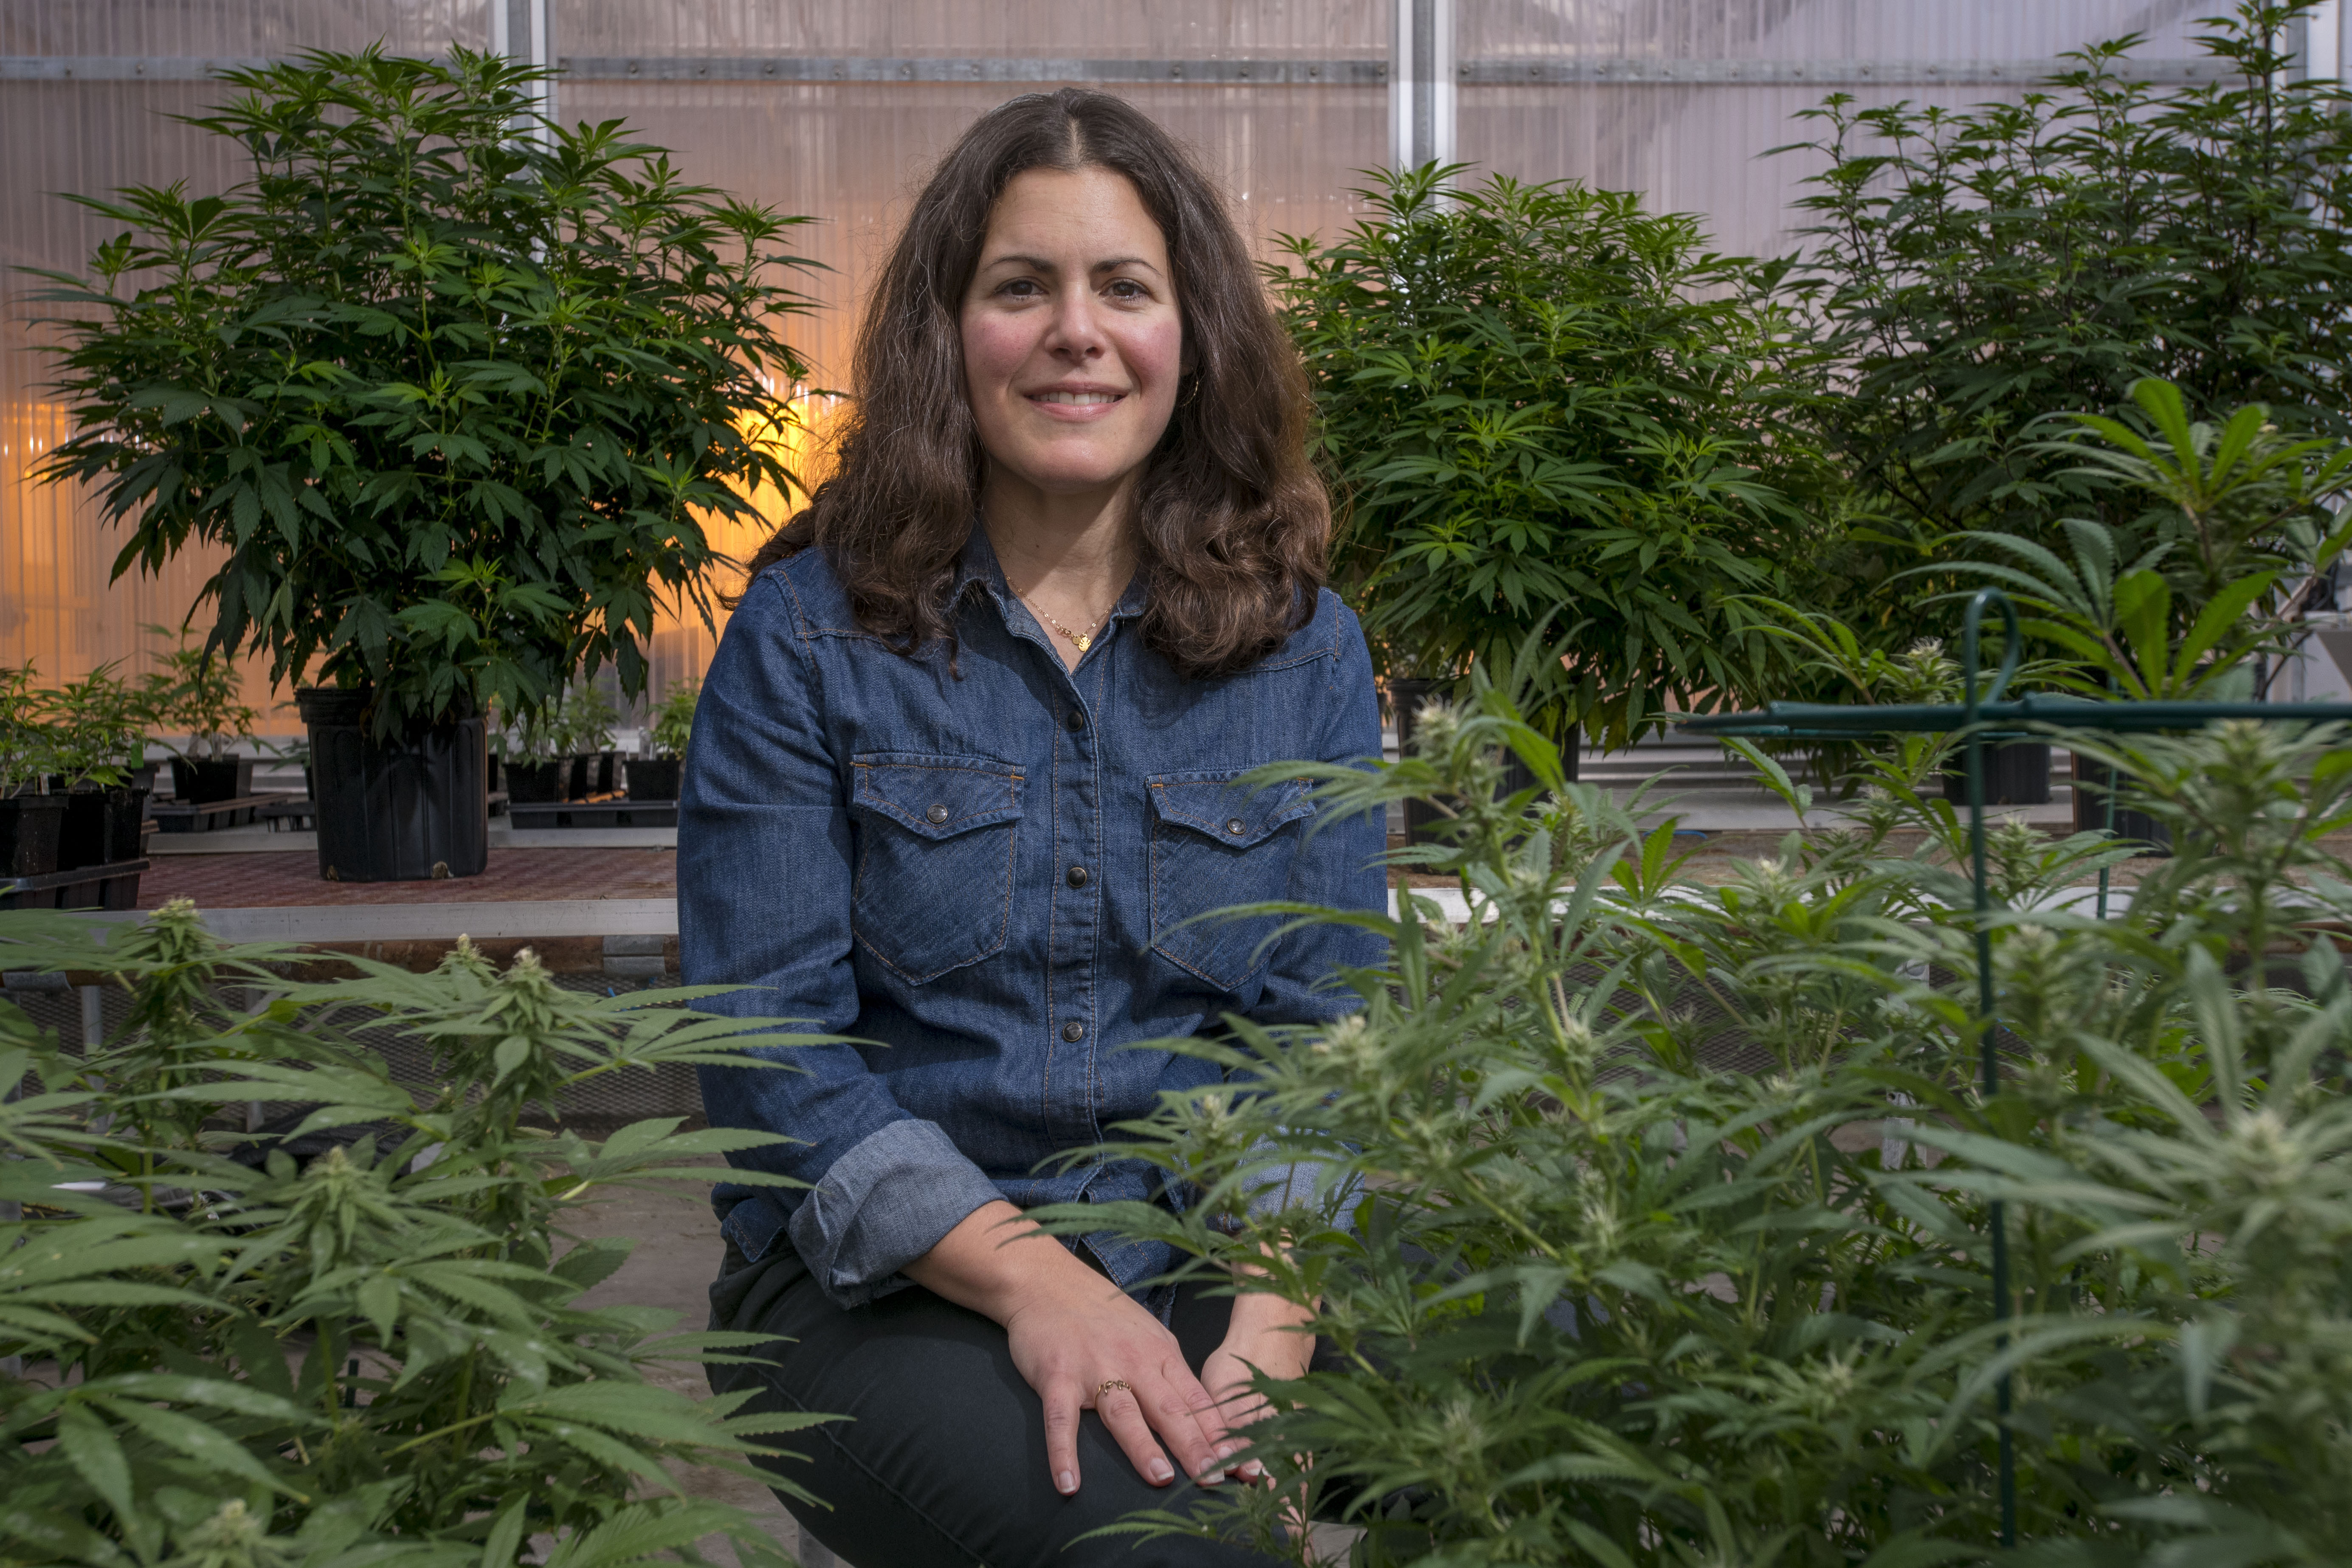 Jessica Lubell, associate professor of plant science, with hemp plants at the Floriculture Greenhouse. (Sean Flynn/UConn Photo)